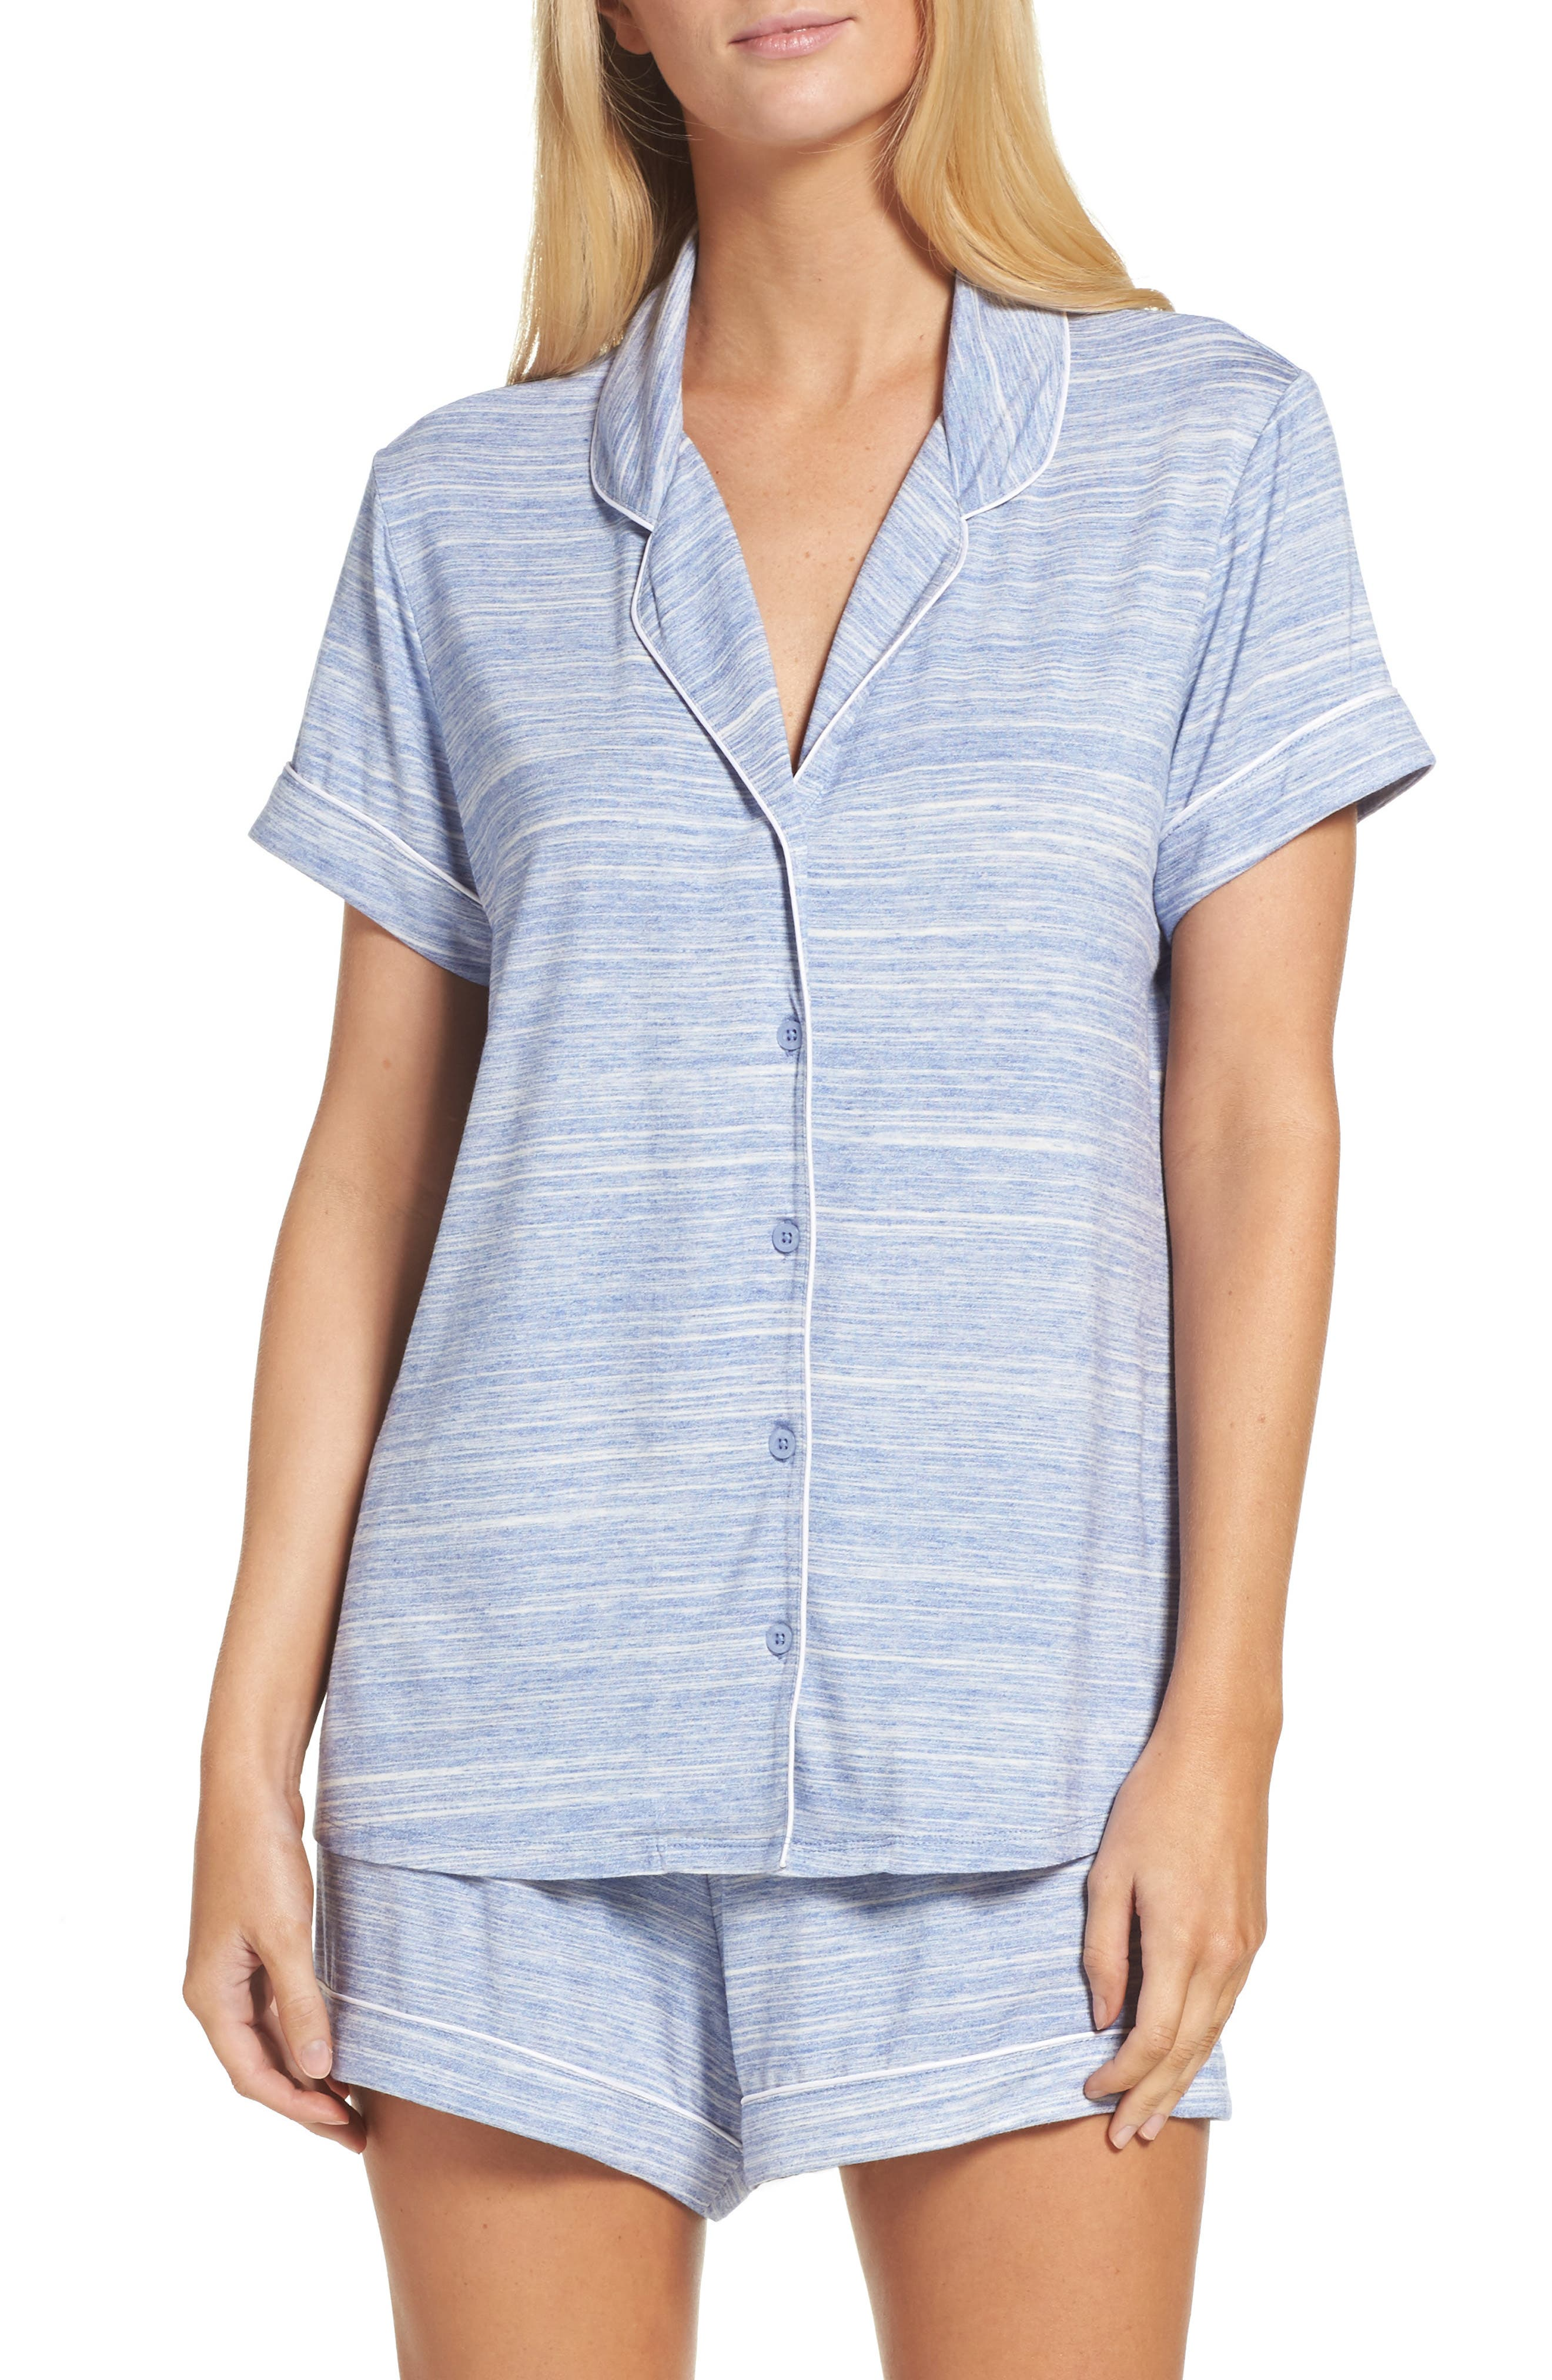 Main Image - Nordstrom Lingerie 'Moonlight' Short Pajamas